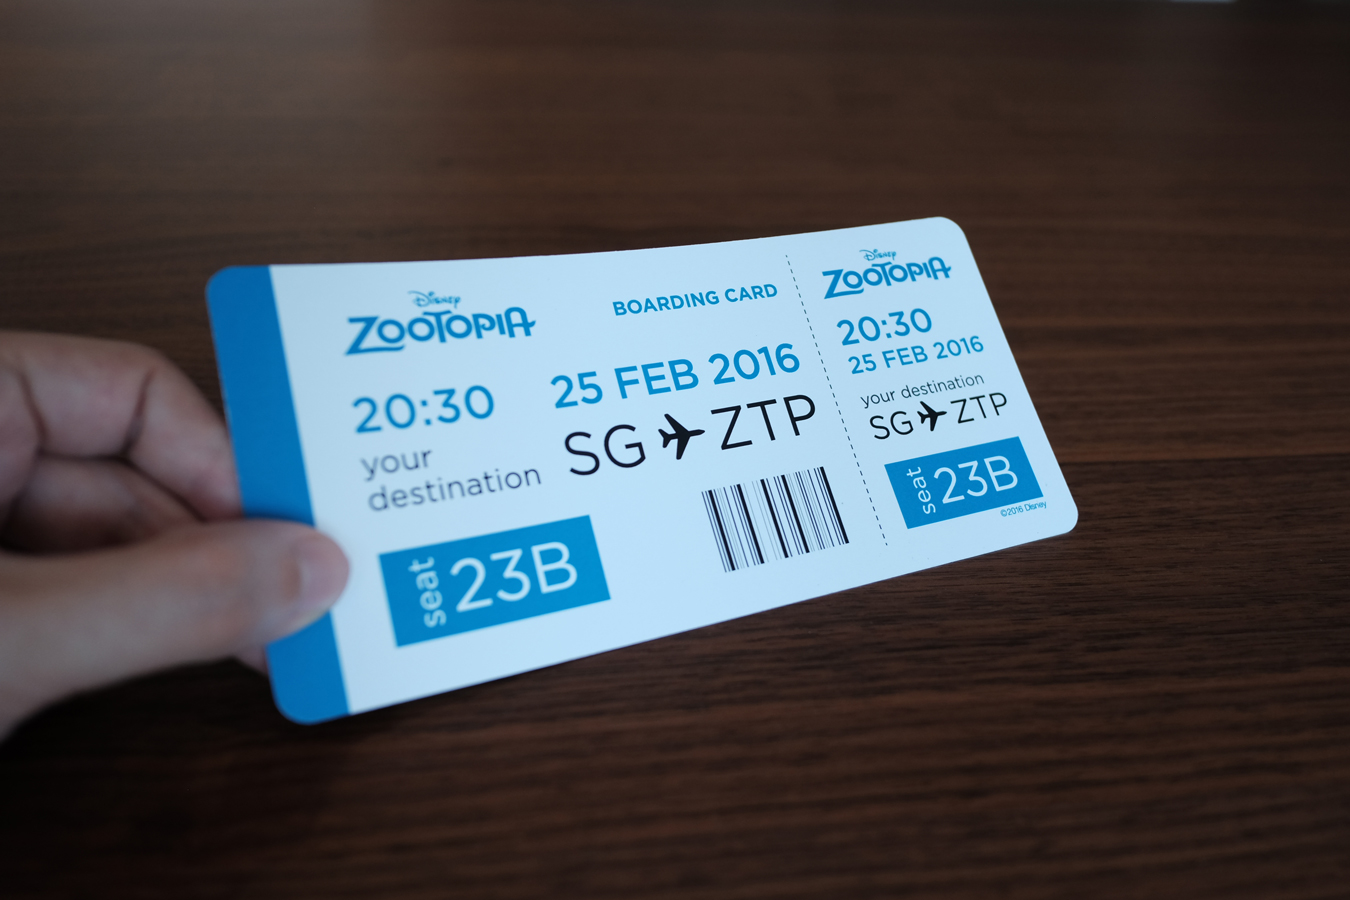 zootopia-boarding-pass